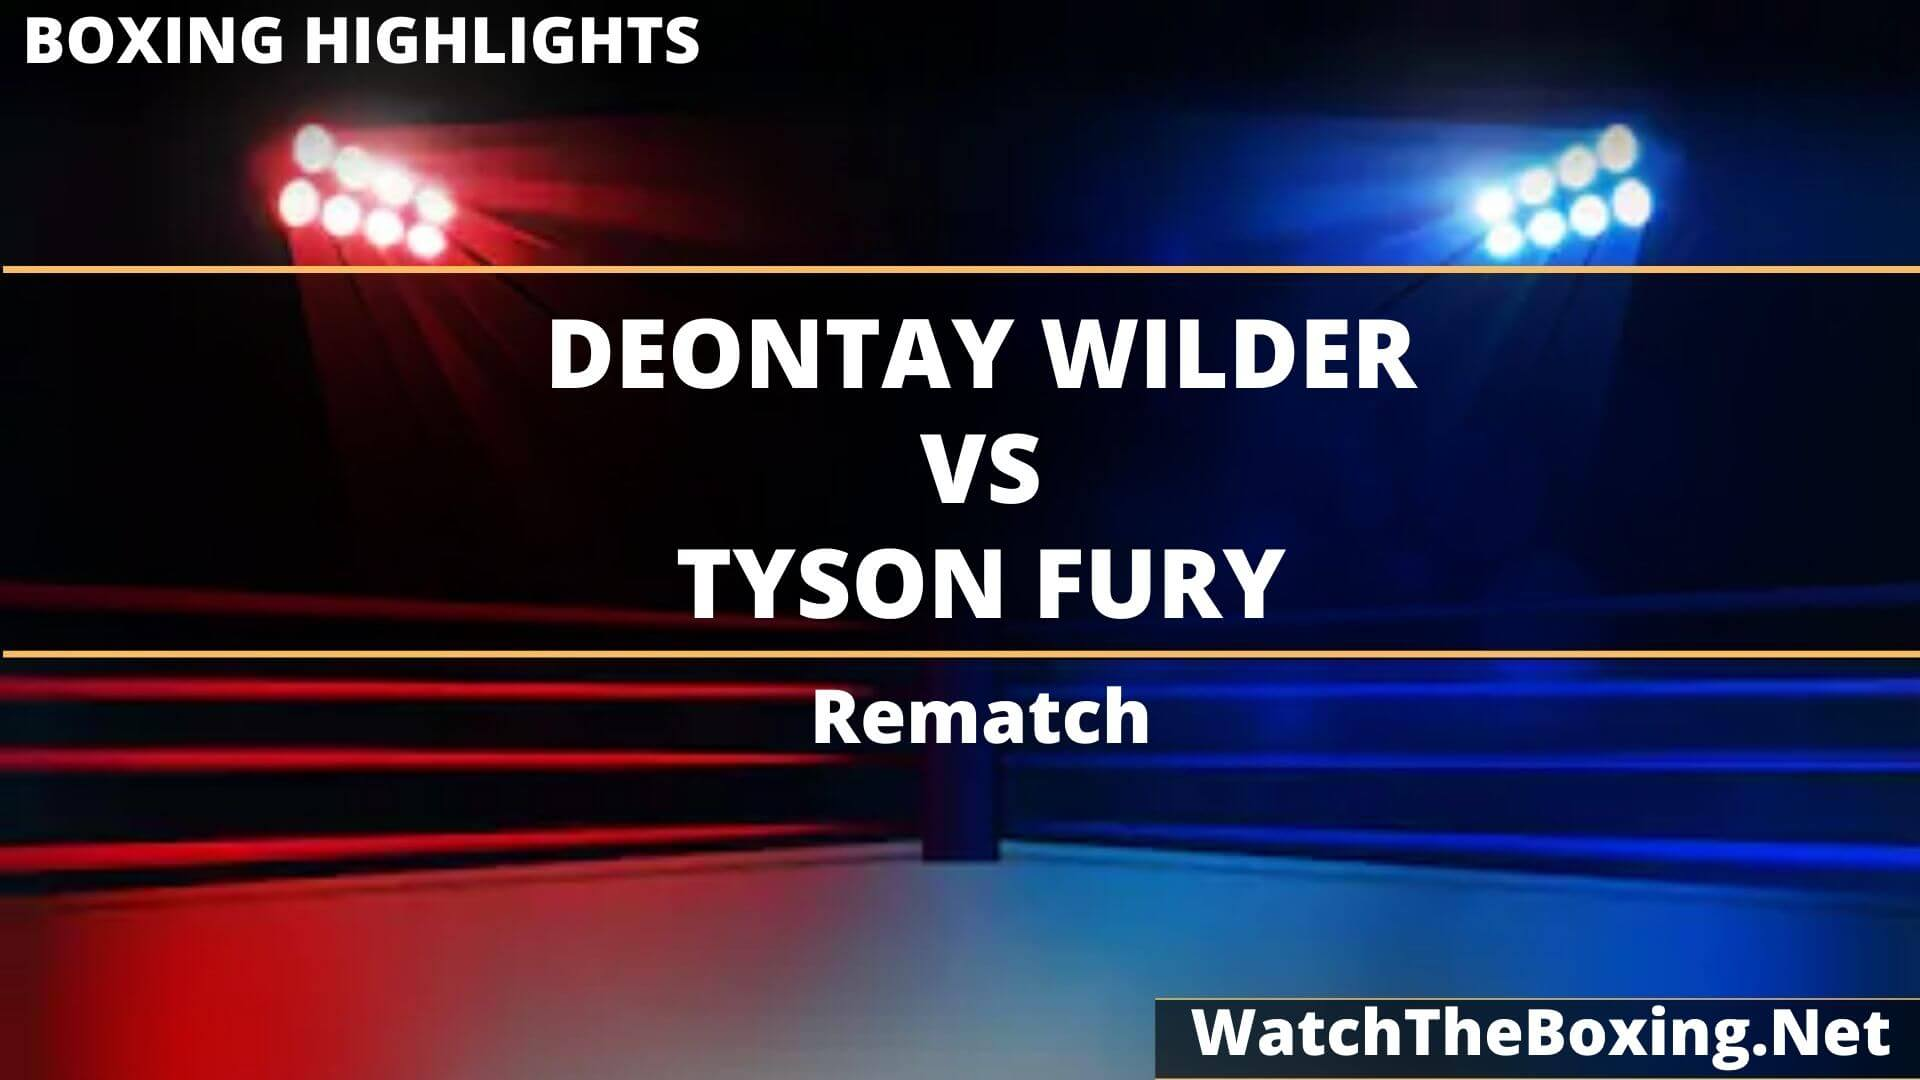 Deontay Wilder Vs Tyson Fury Highlights 2020